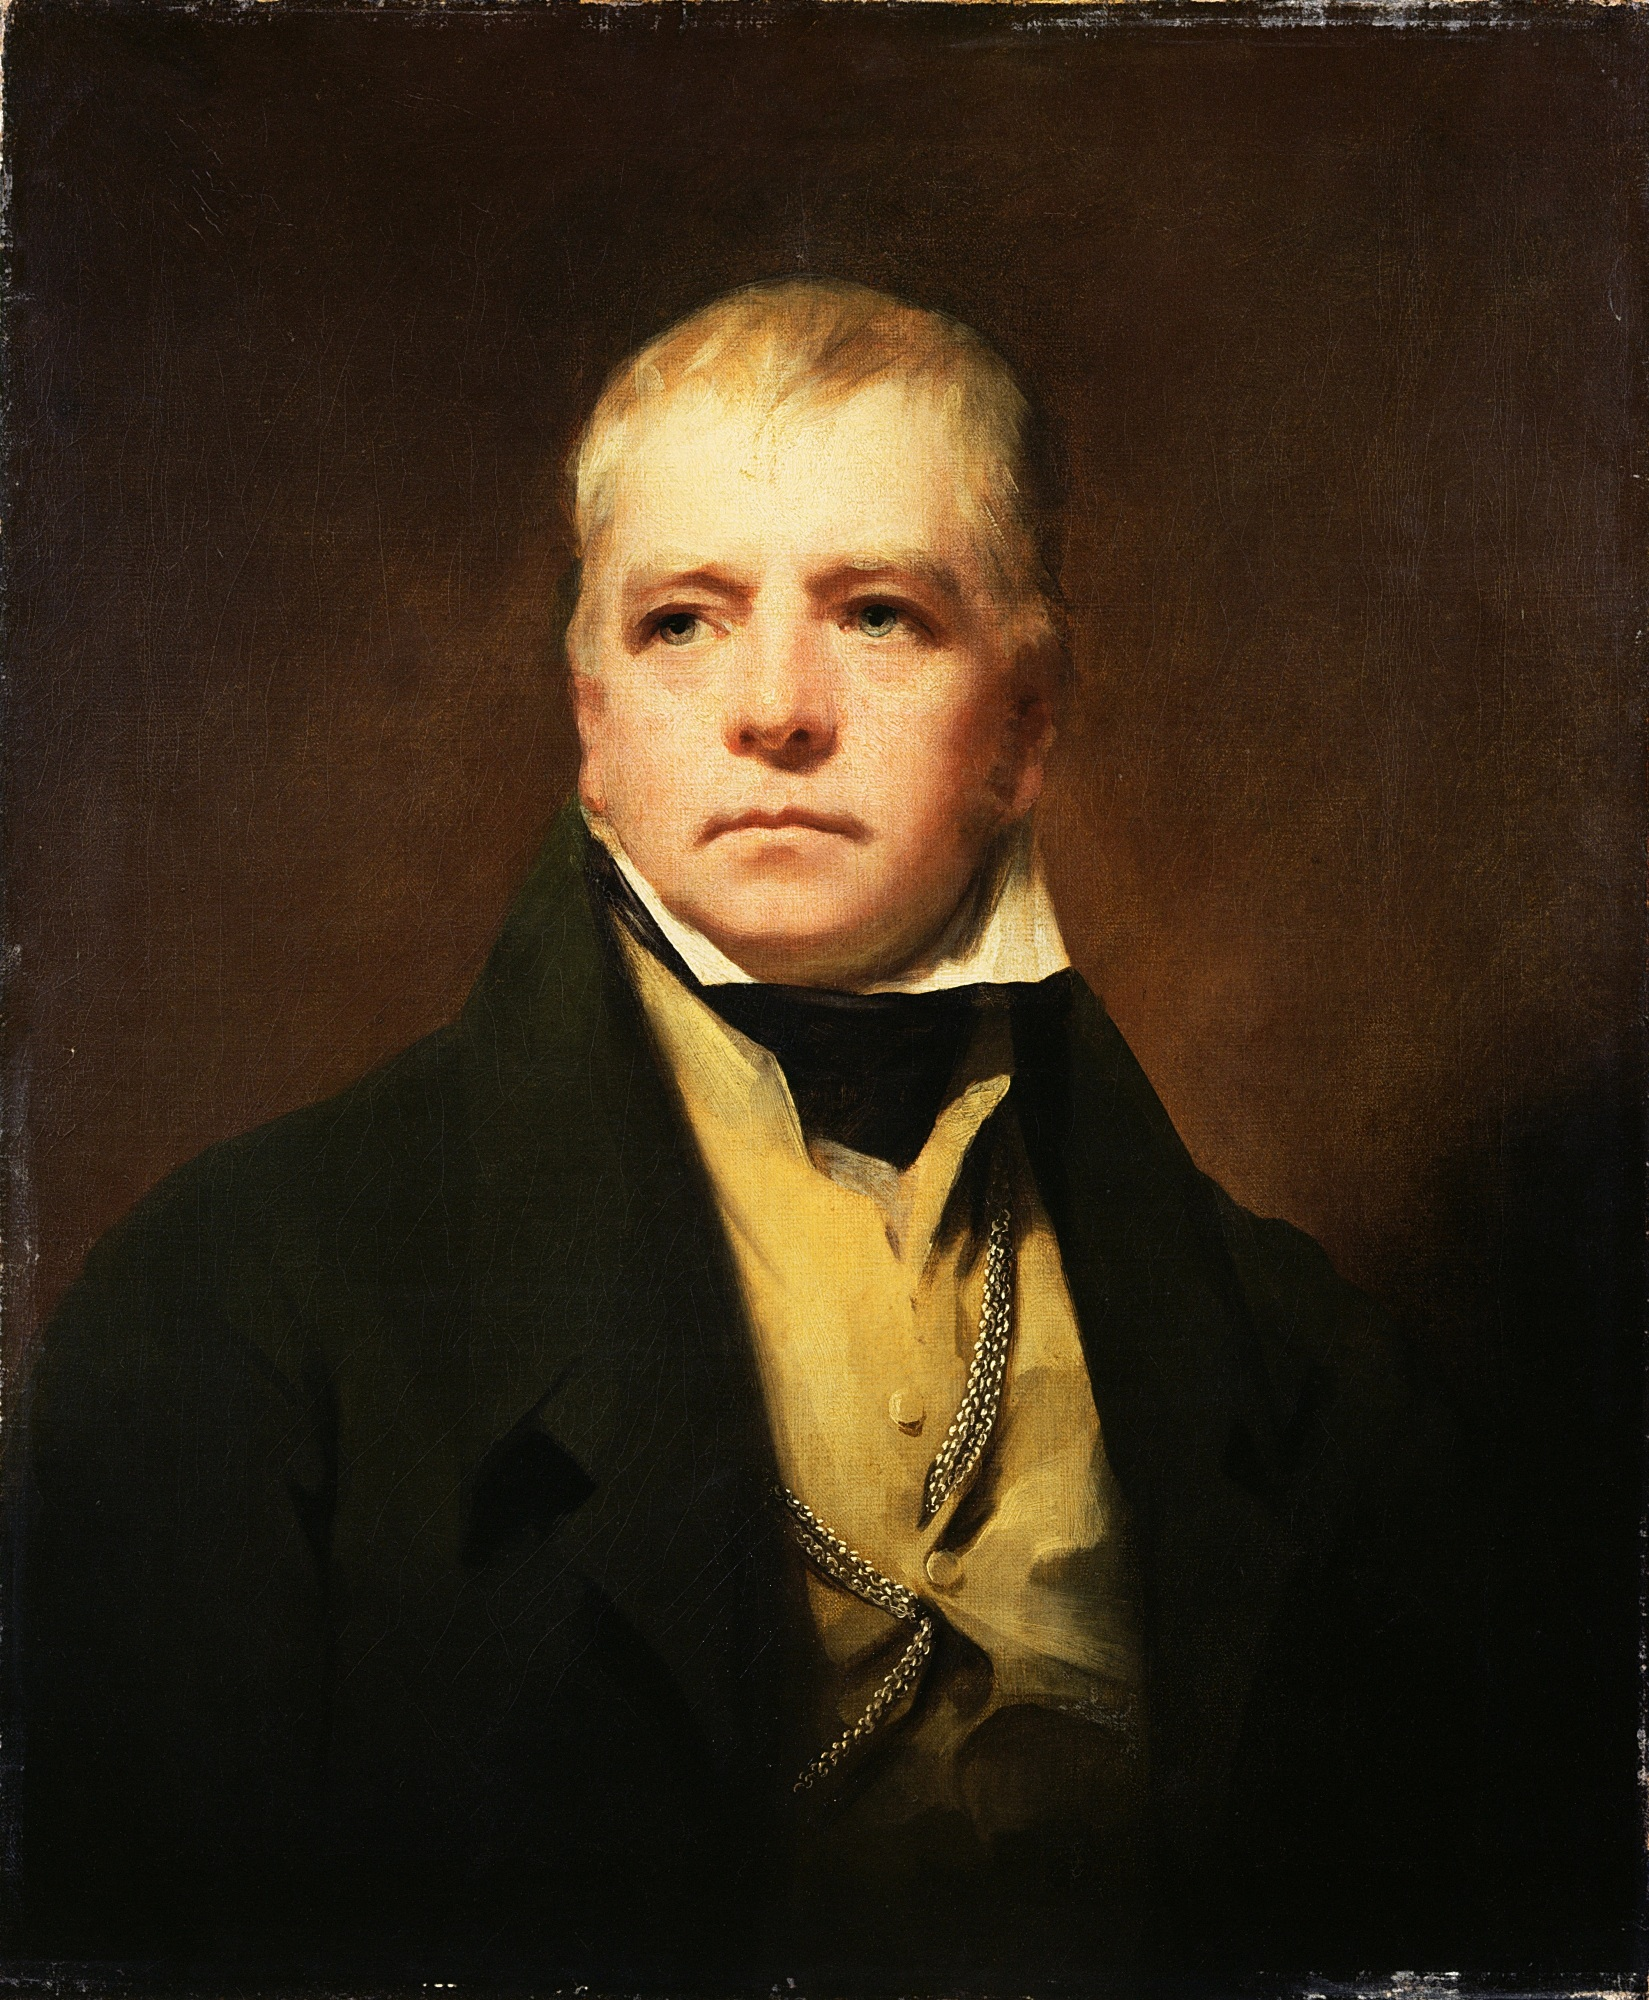 [[Henry Raeburn|Raeburn]]'s portrait of Sir Walter Scott in 1822